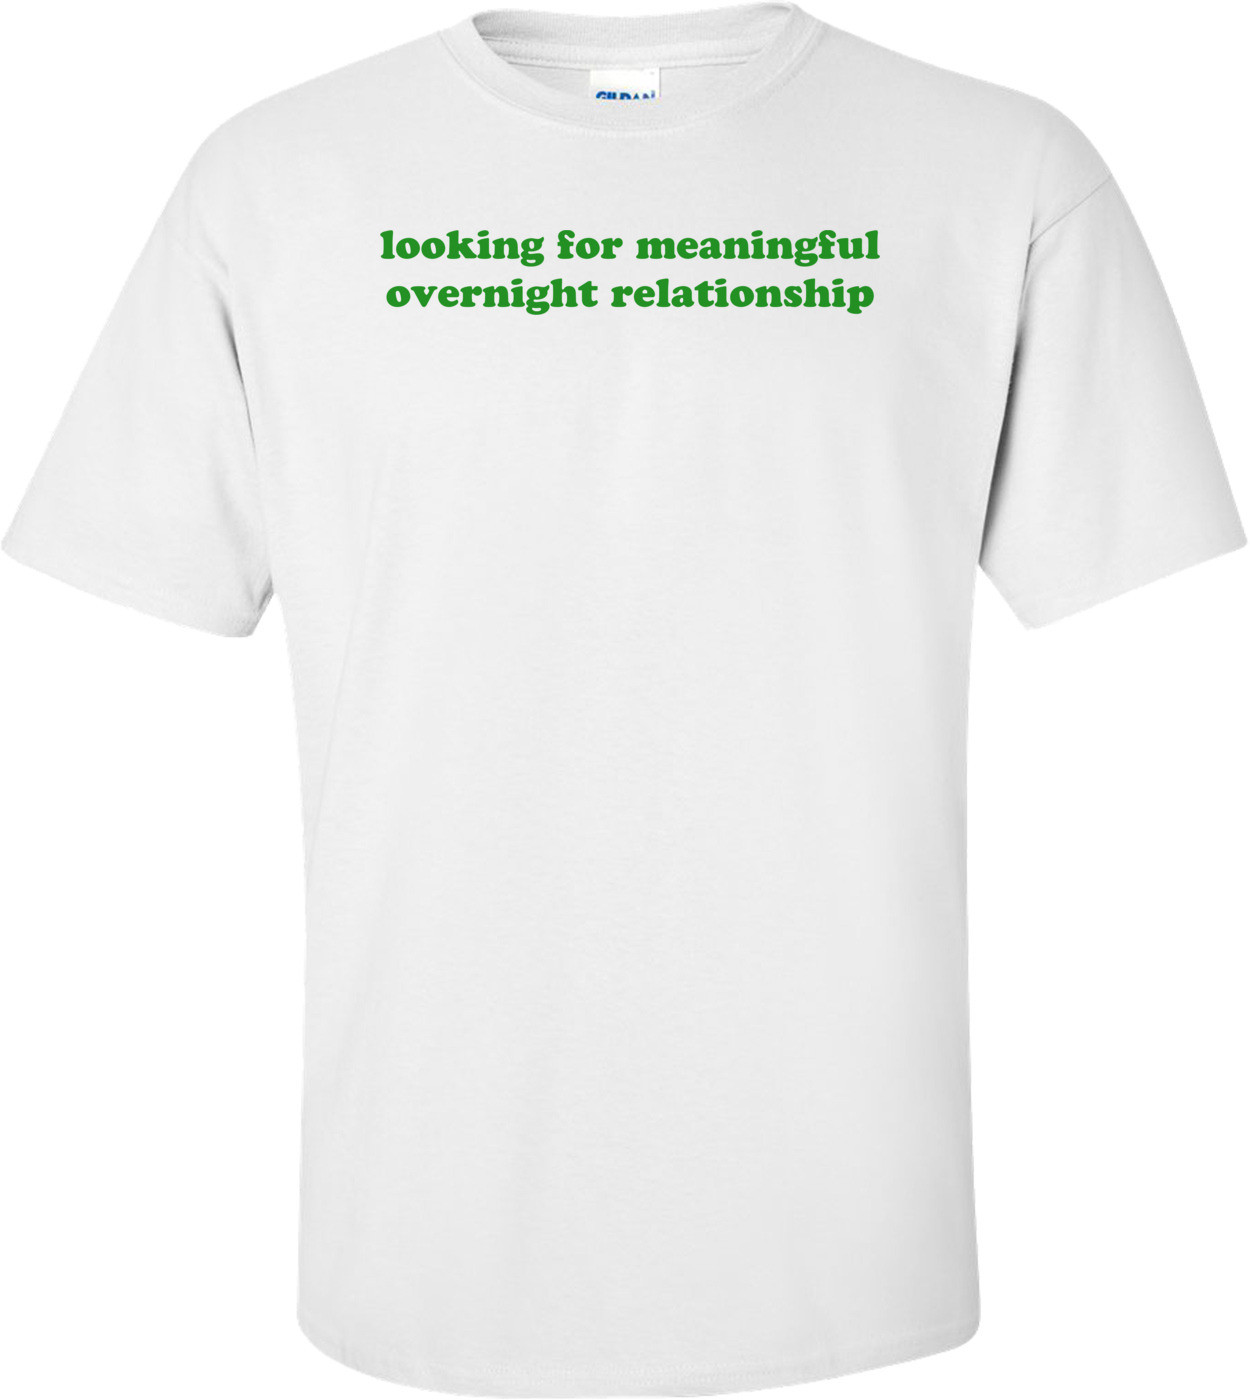 looking for meaningful overnight relationship Shirt